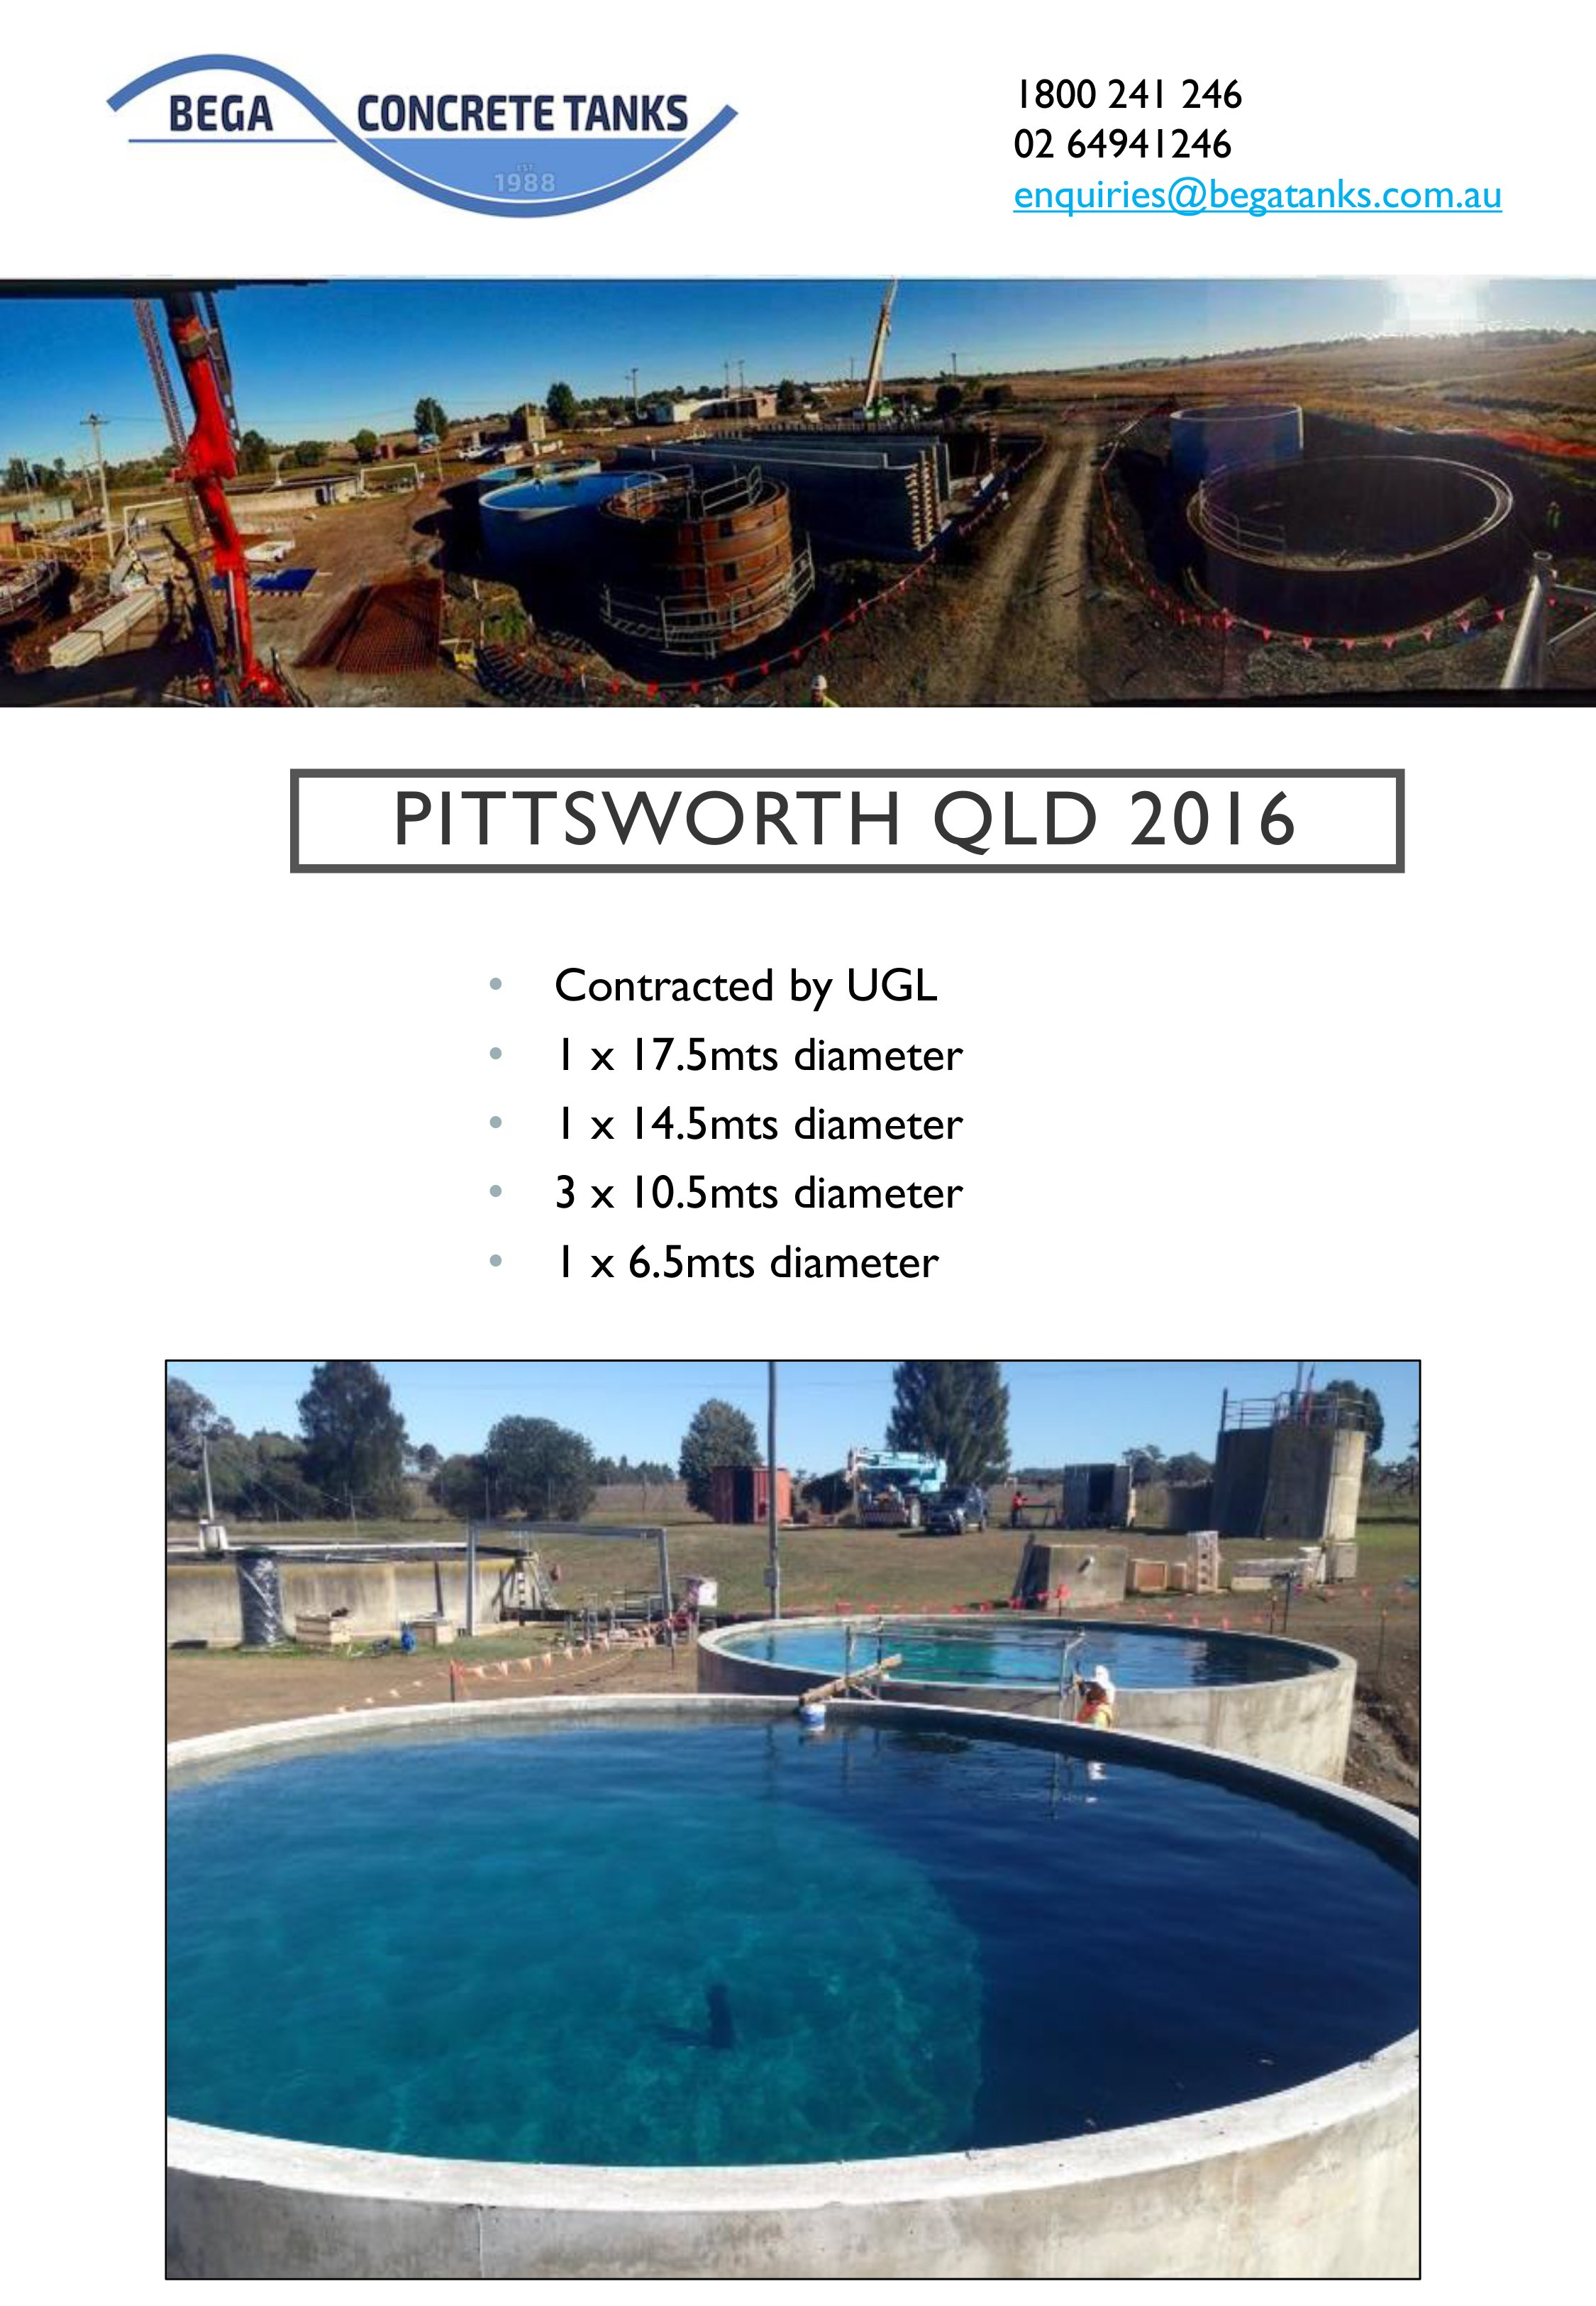 Pittsworth concrete tank